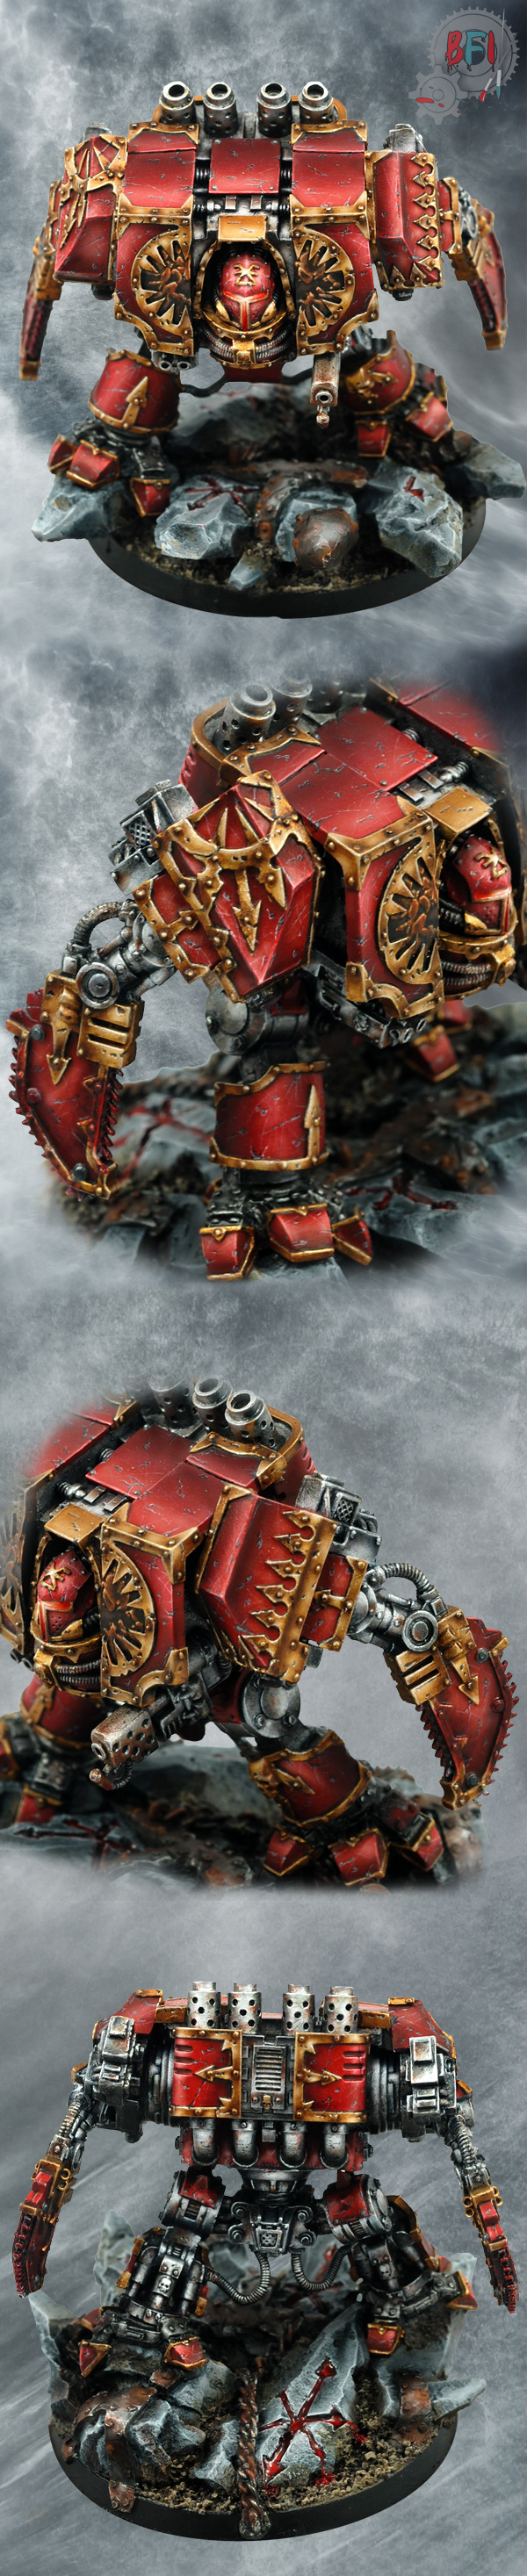 World Eaters Dreadnought by Forge World